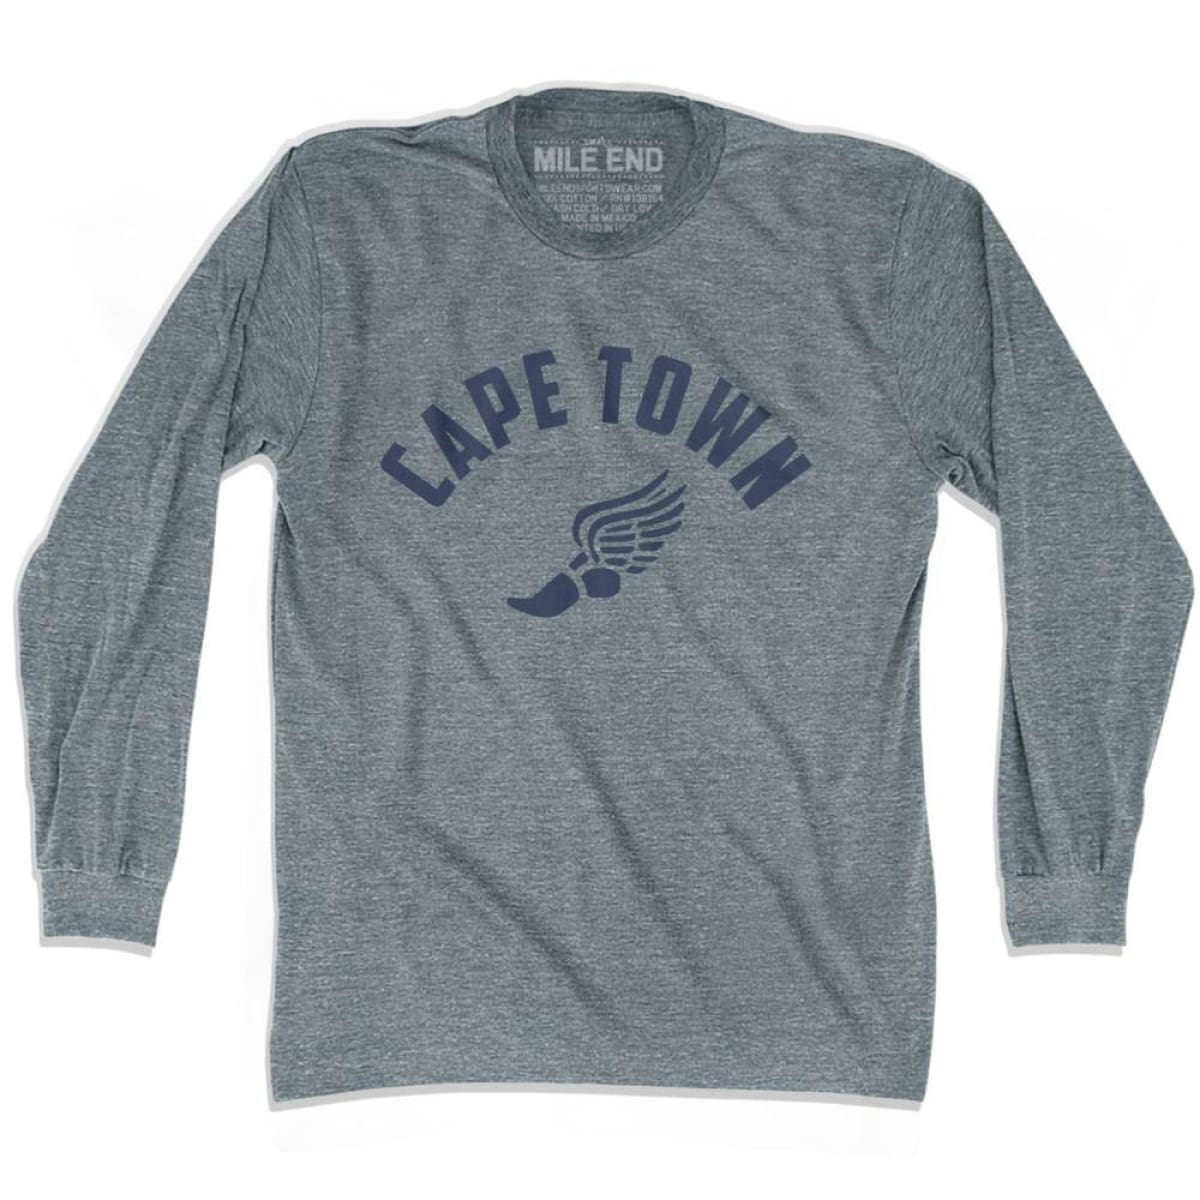 Cape Town Track Long Sleeve T-shirt - Athletic Grey / Adult X-Small - Mile End Track